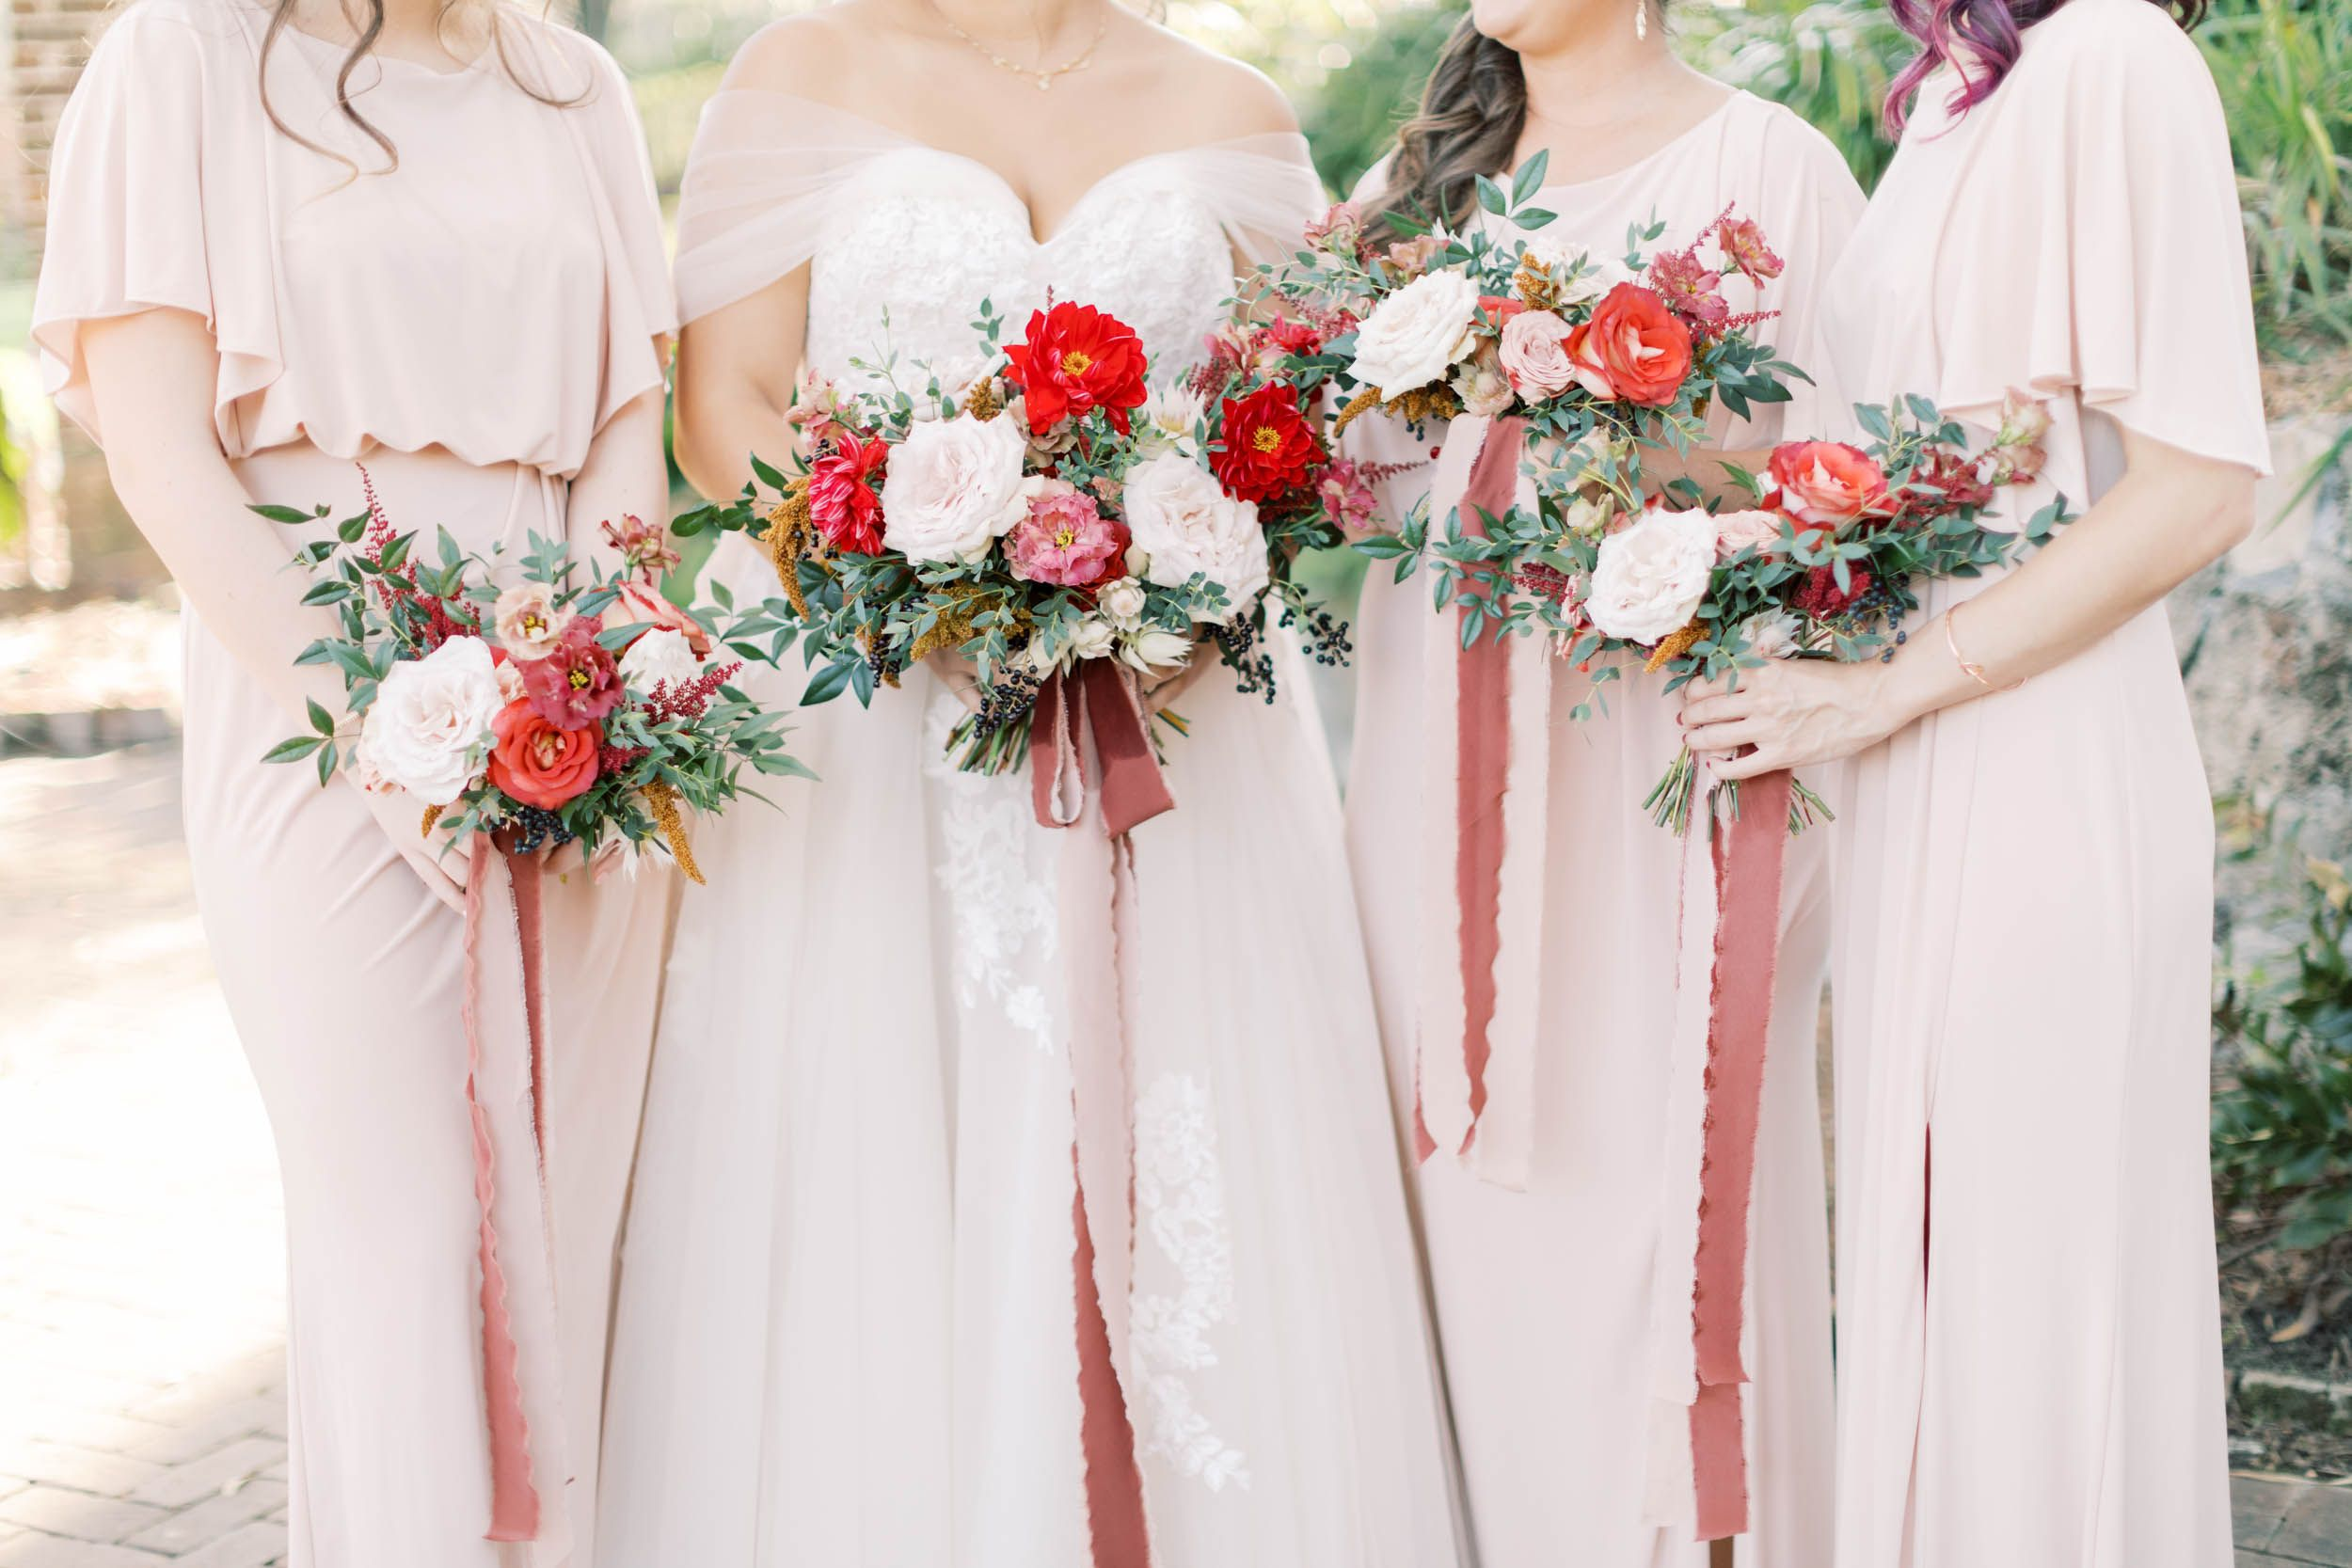 Gorgeous Red And White Wedding Bouquets Paired With Blush